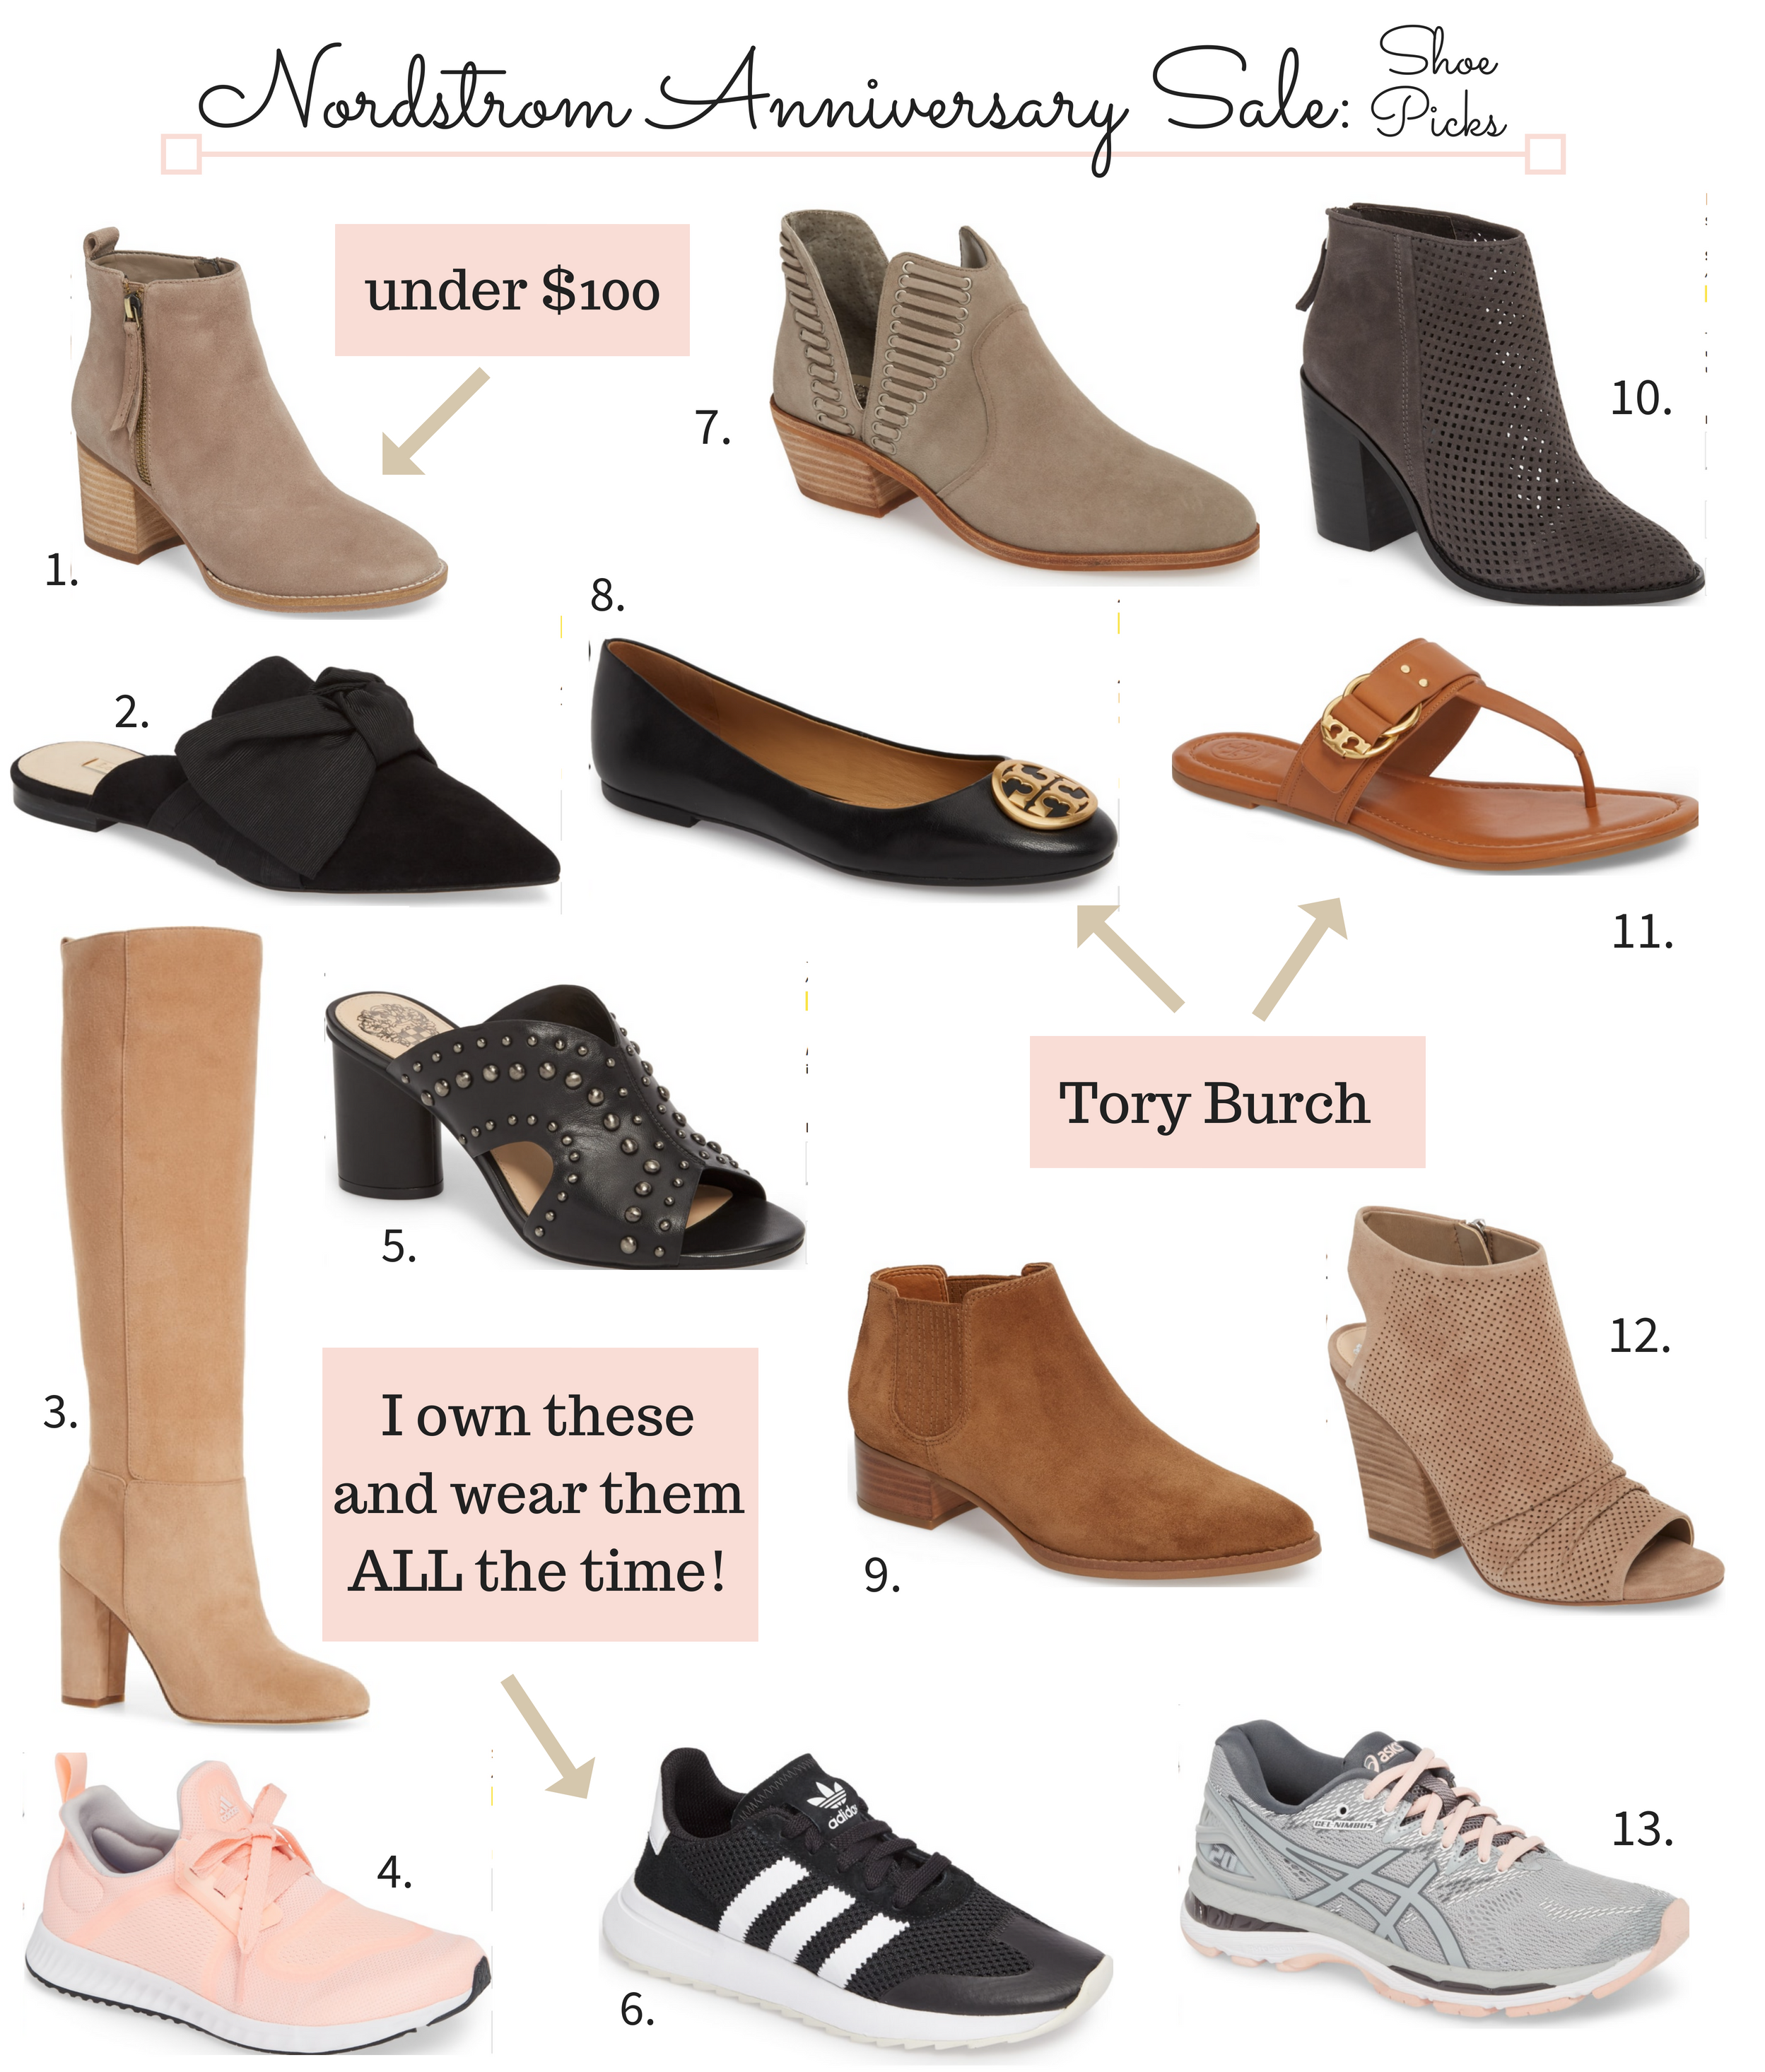 Nordstrom Anniversary Sale 2018 Shoes